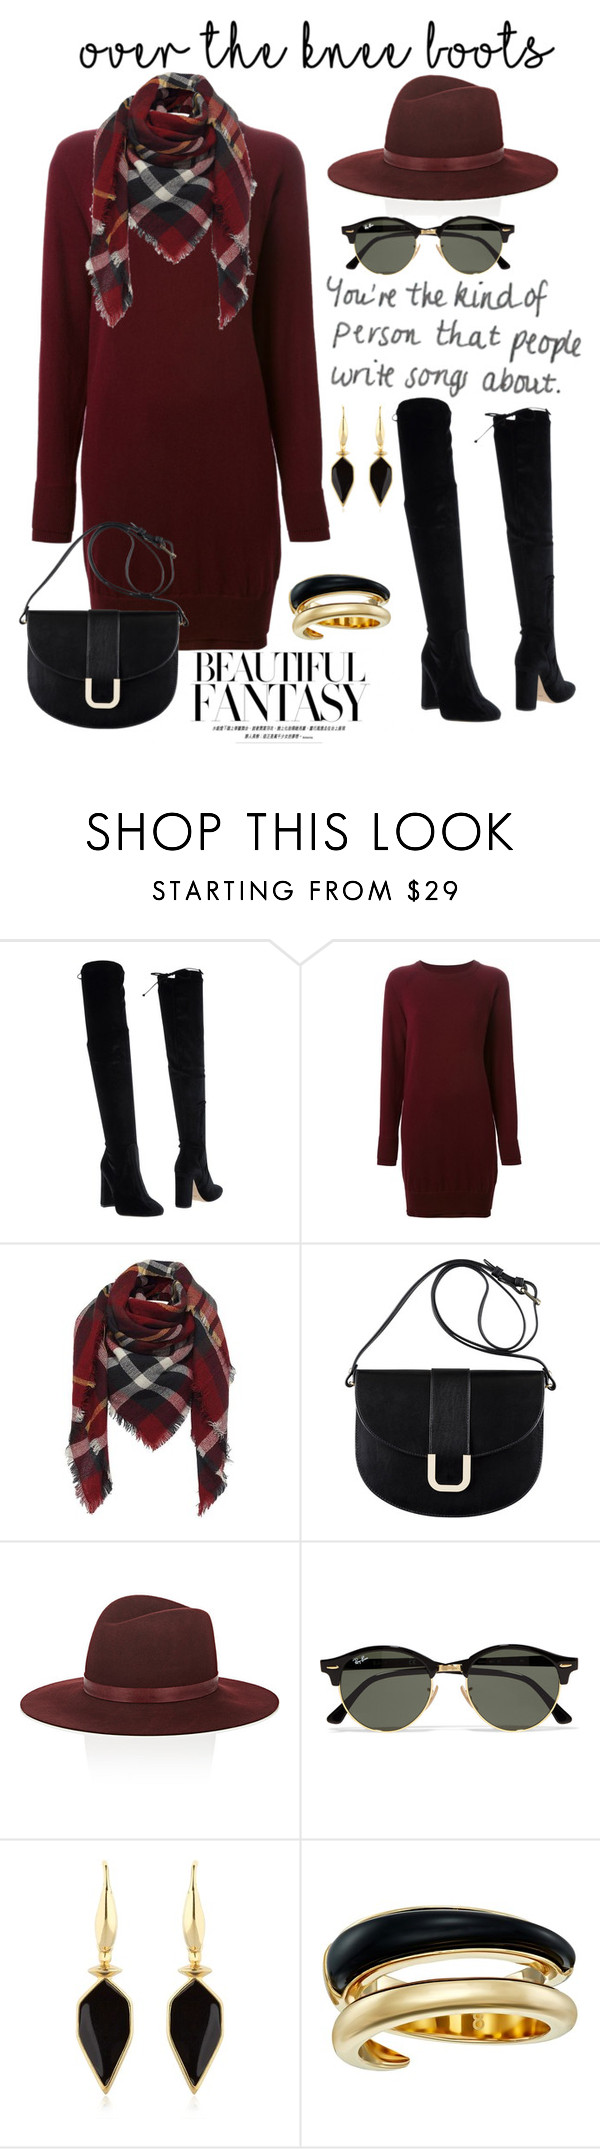 """""""Over the Knee Boots"""" by shelley-harcar ❤ liked on Polyvore featuring Bianca Di, Maison Margiela, A.P.C., Janessa Leone, Ray-Ban, Isabel Marant, Michael Kors and OverTheKneeBoots"""